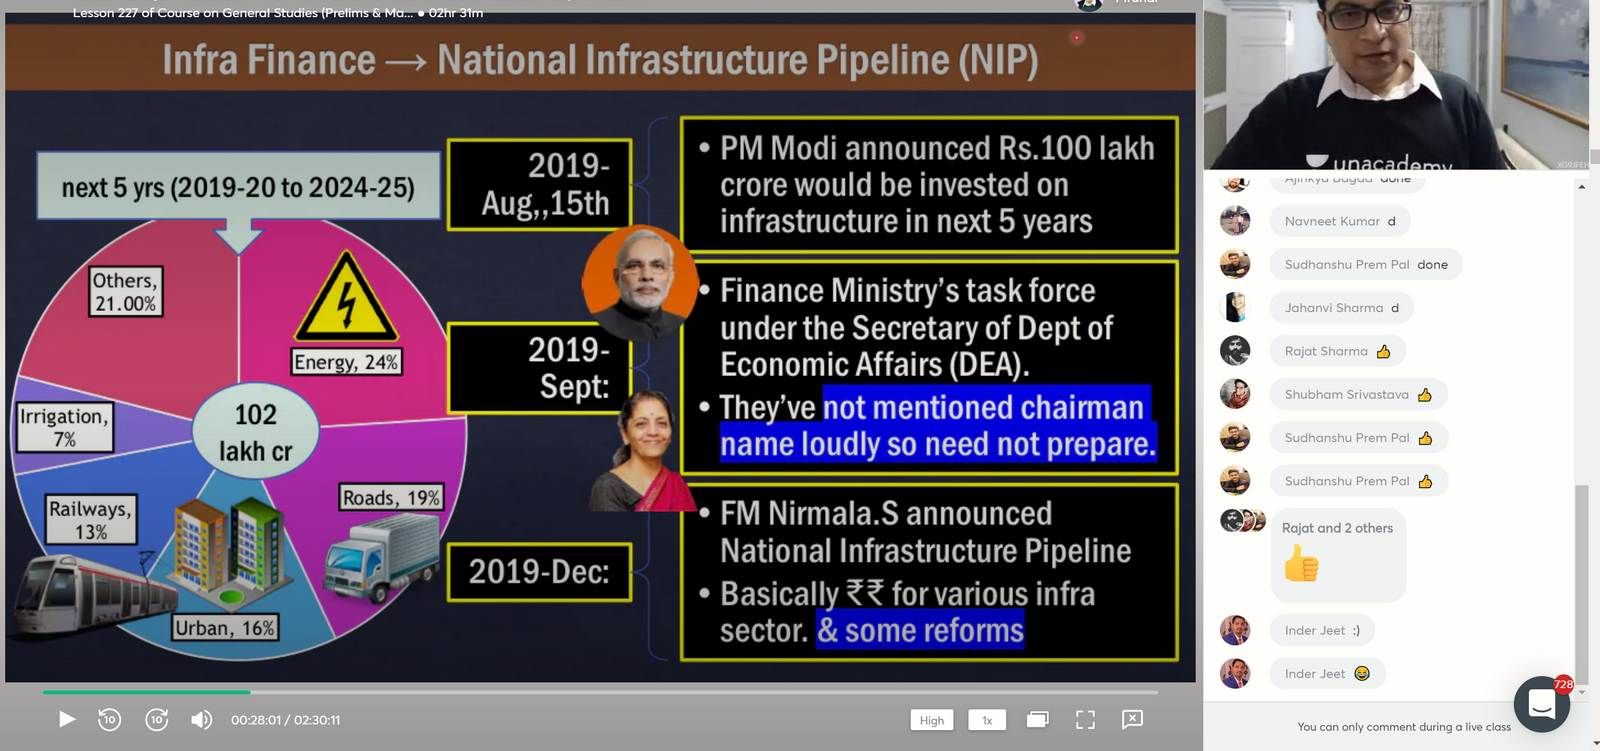 What is National Infrastructure Pipeline (NIP)? Mrunal